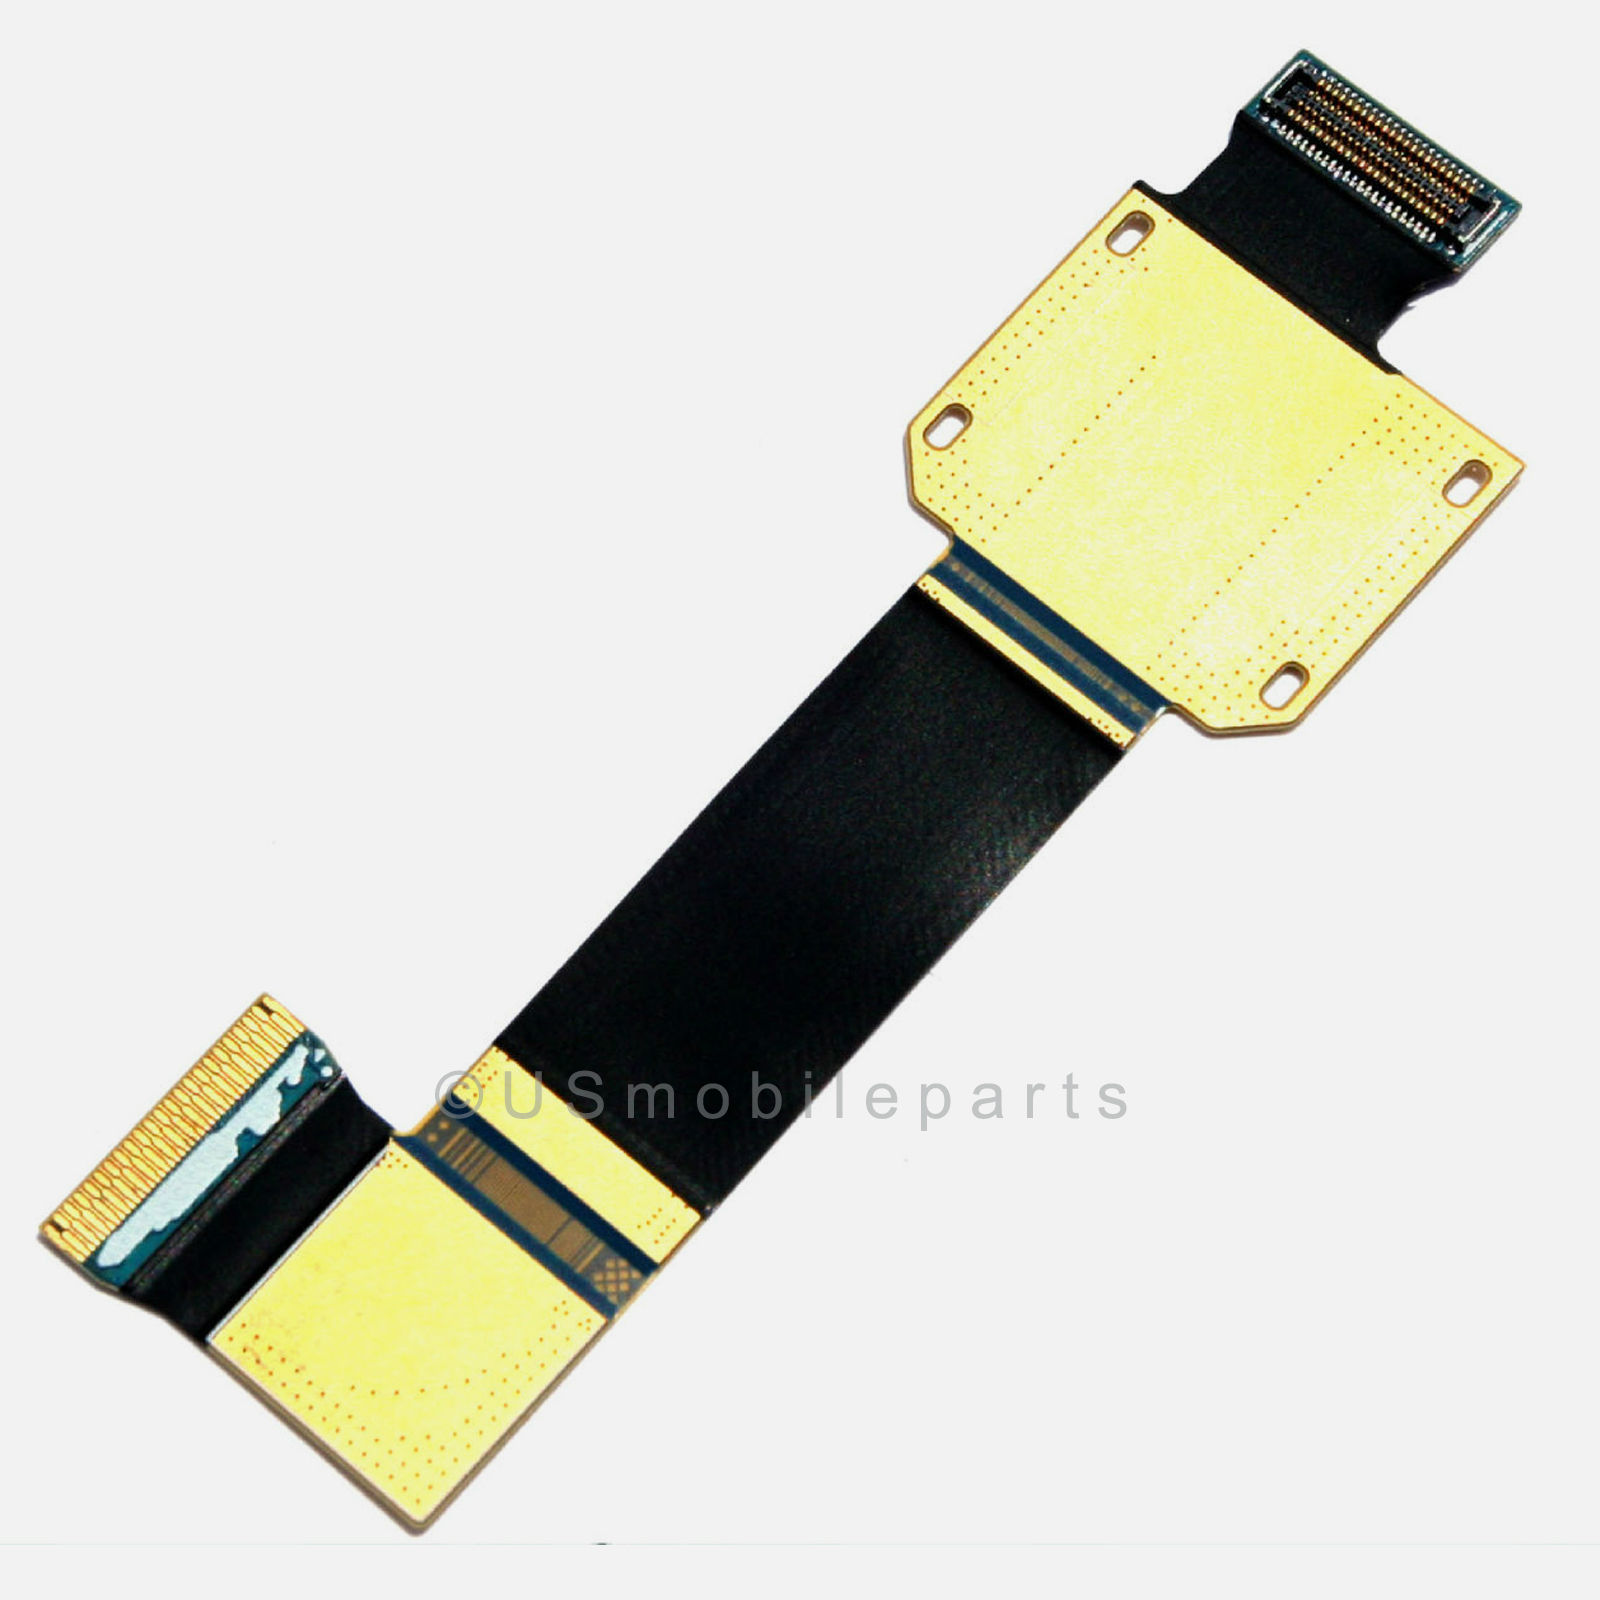 Pcb Ribbon Cable : Oem samsung gravity txt t slide flex circuit cable pcb